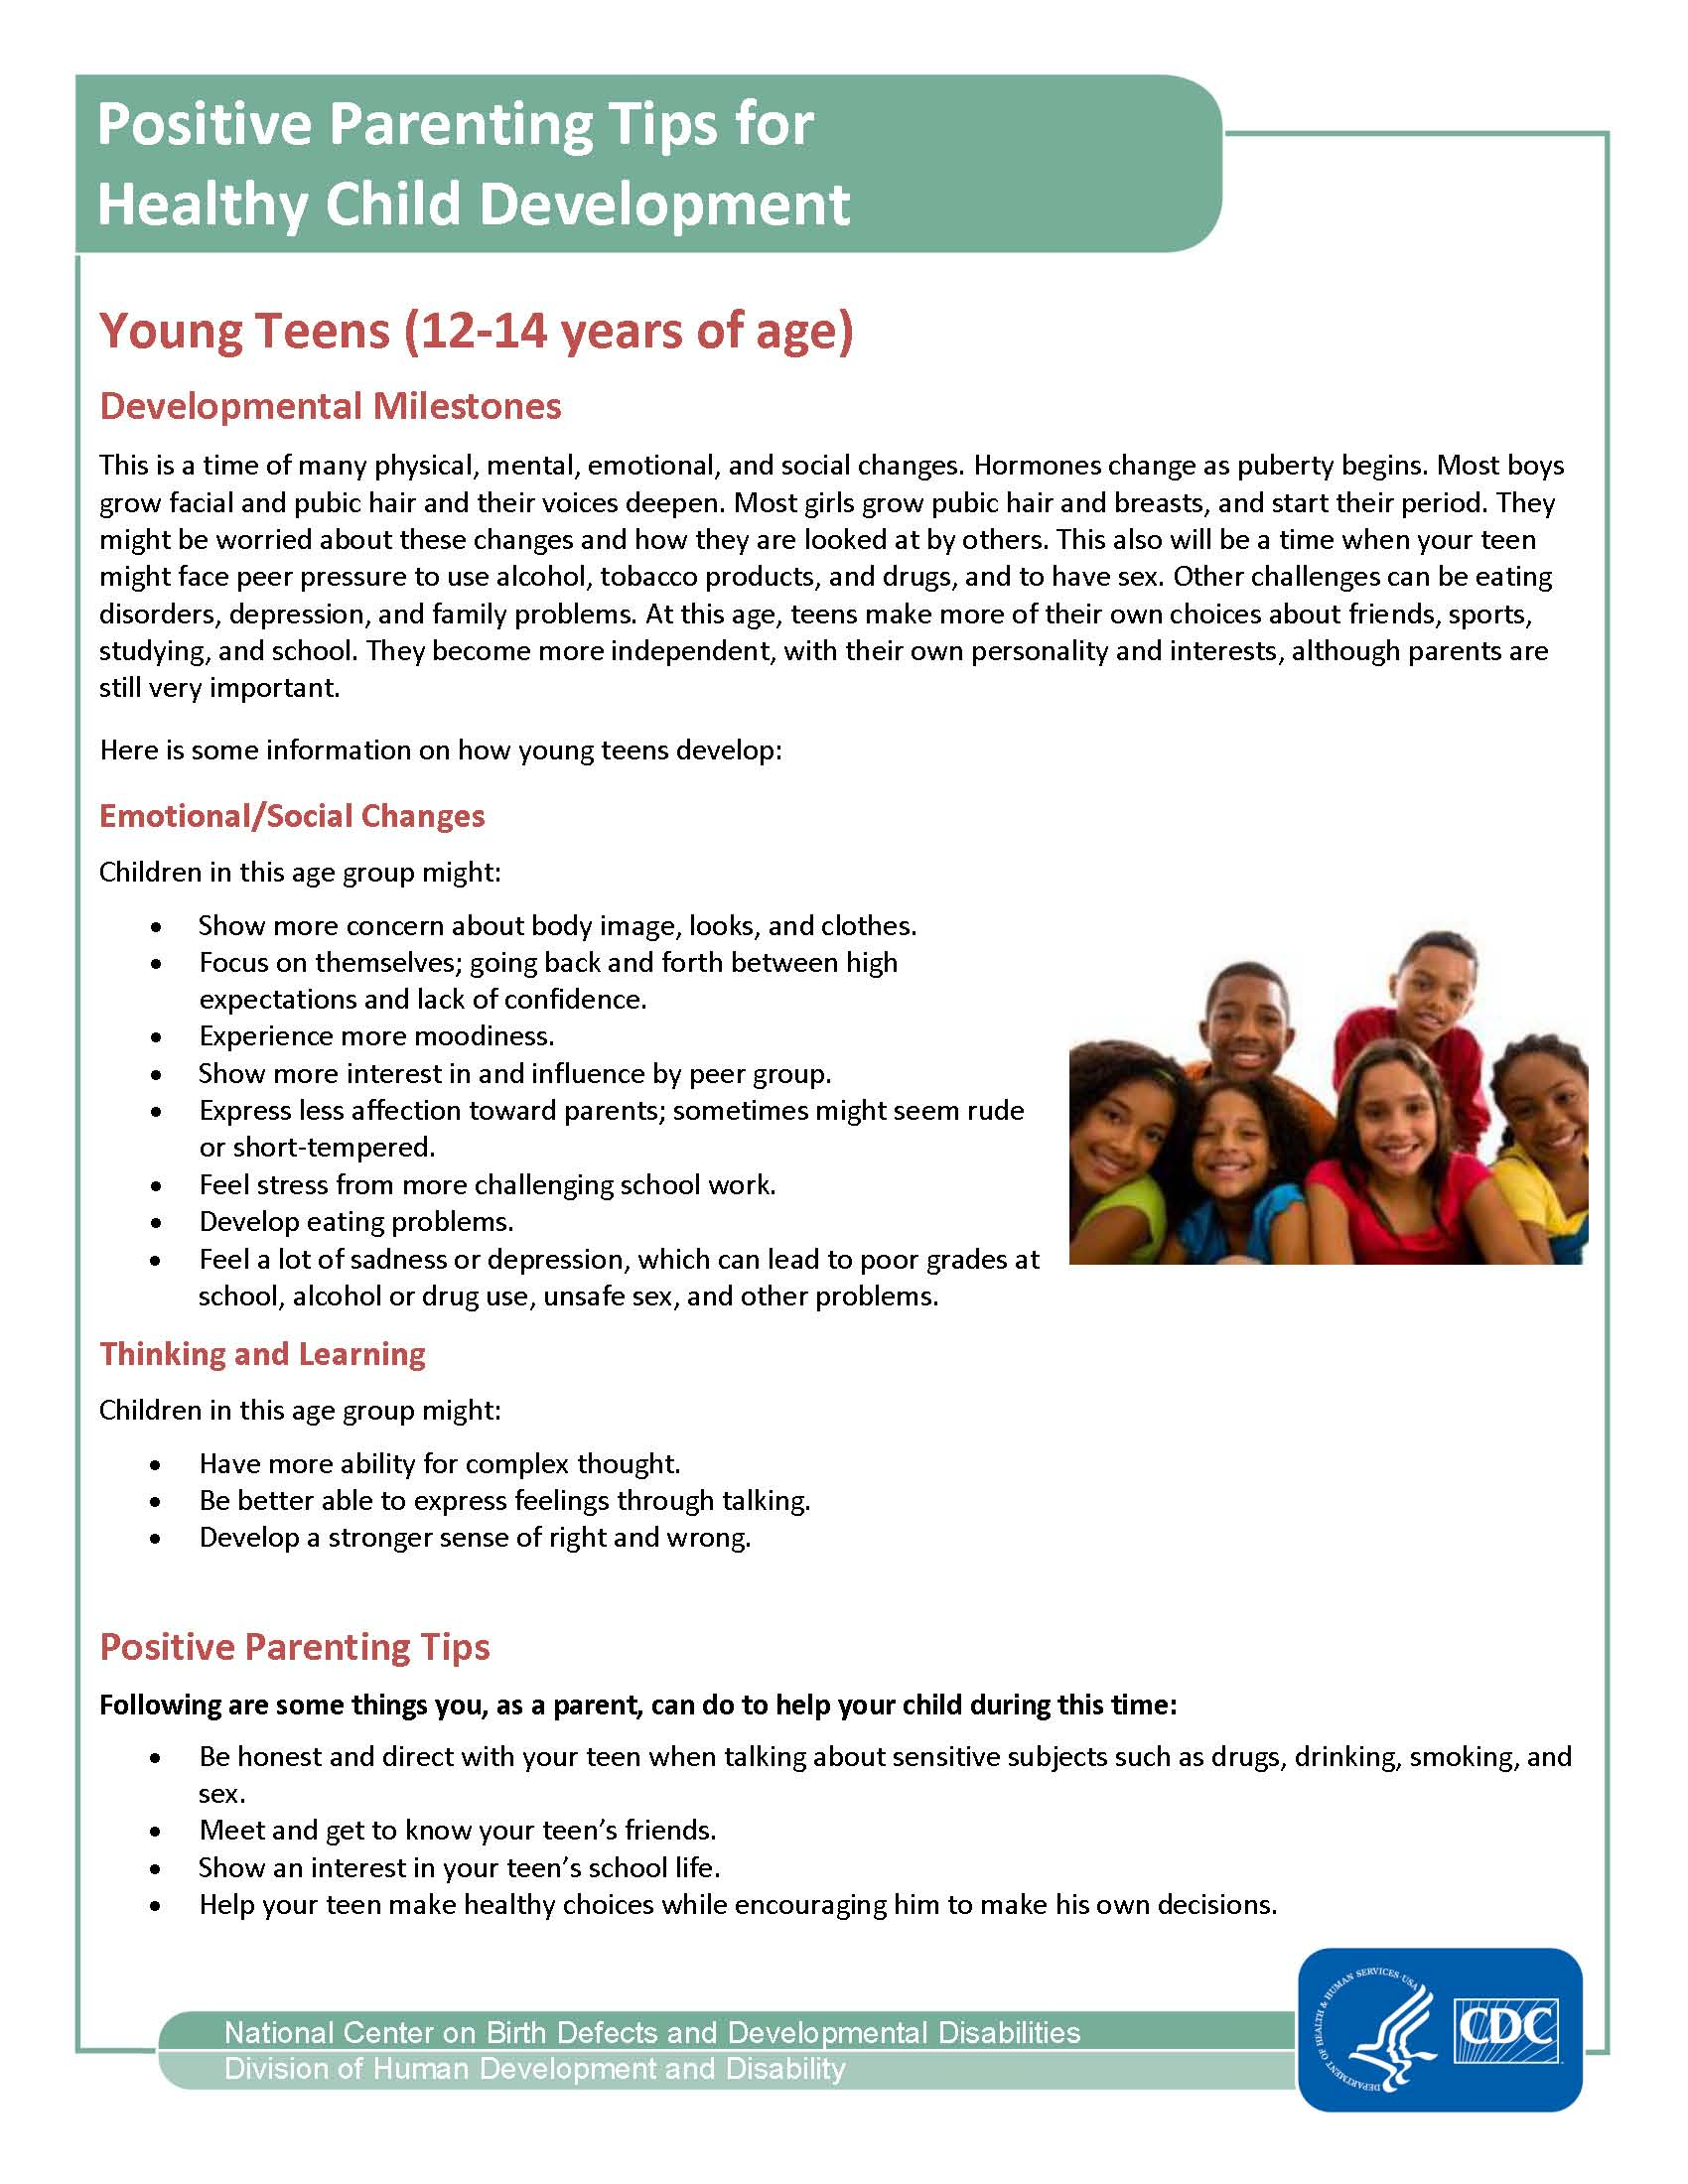 Website Positive Parenting Tips For Young Teens 12 14 Page 1